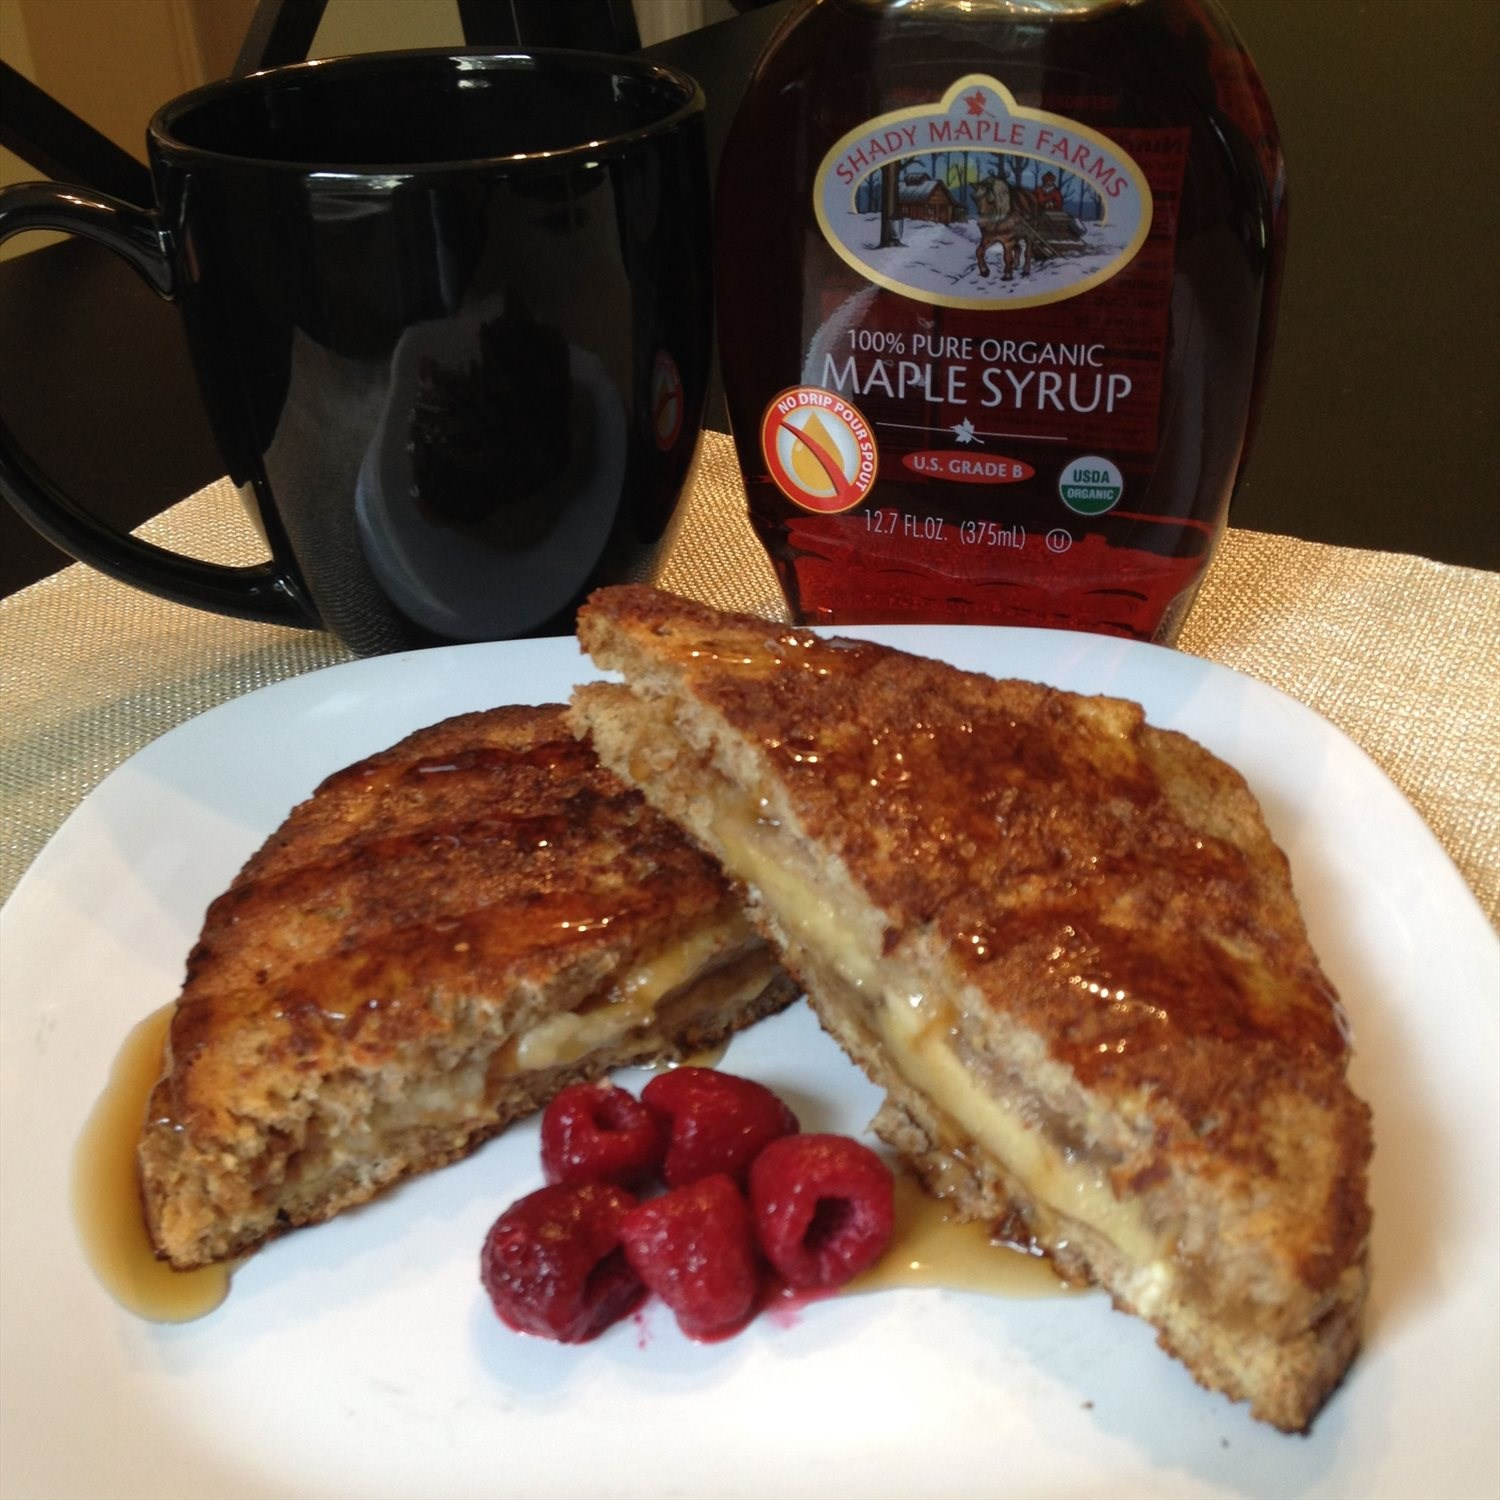 Banana Almond Butter French Toast Sandwich